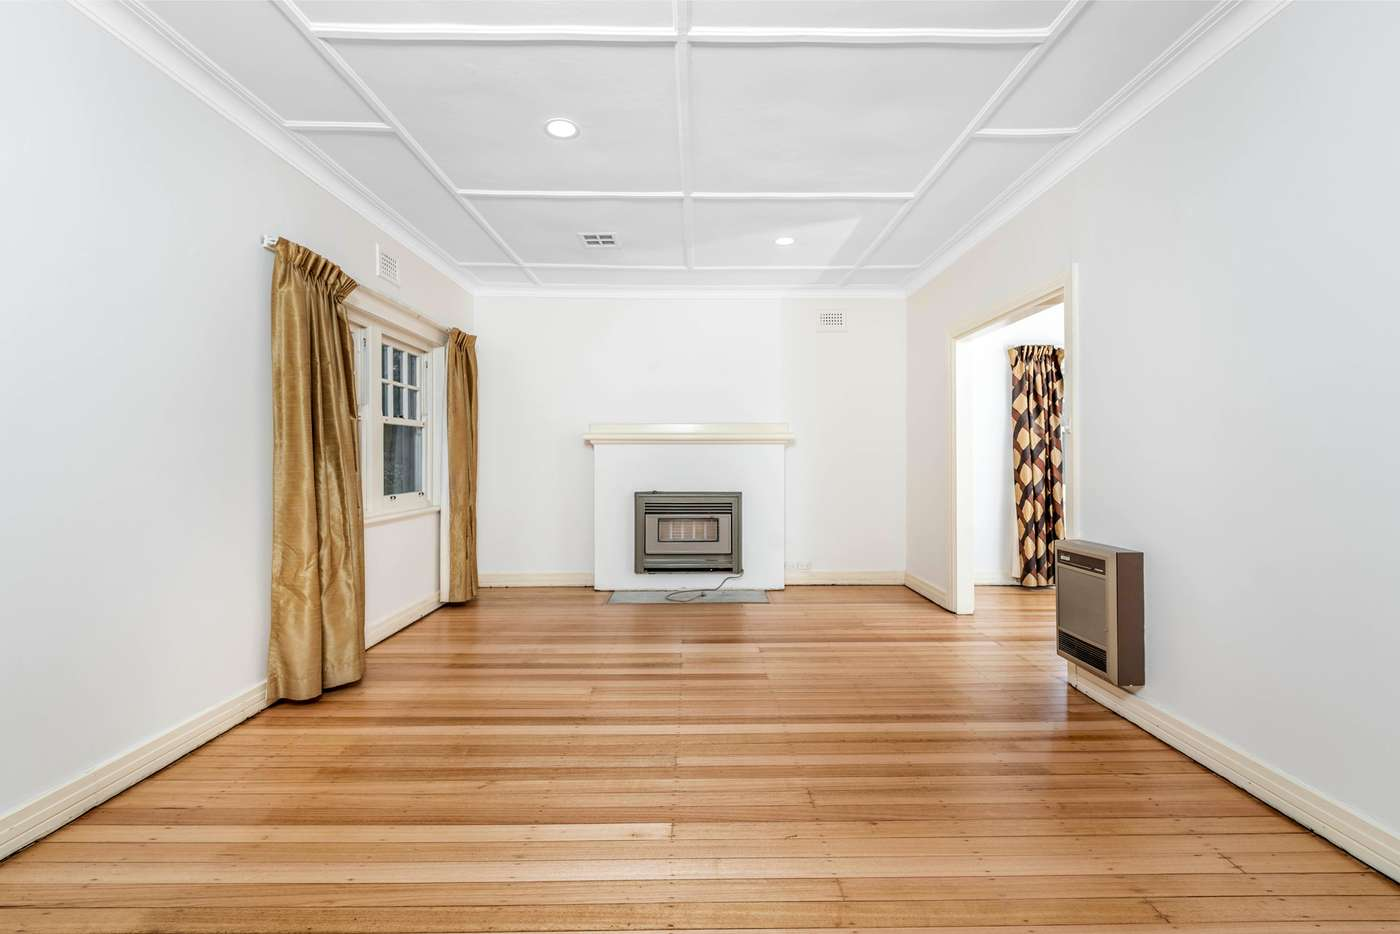 Fifth view of Homely house listing, 7 Gipps Street, Barton ACT 2600